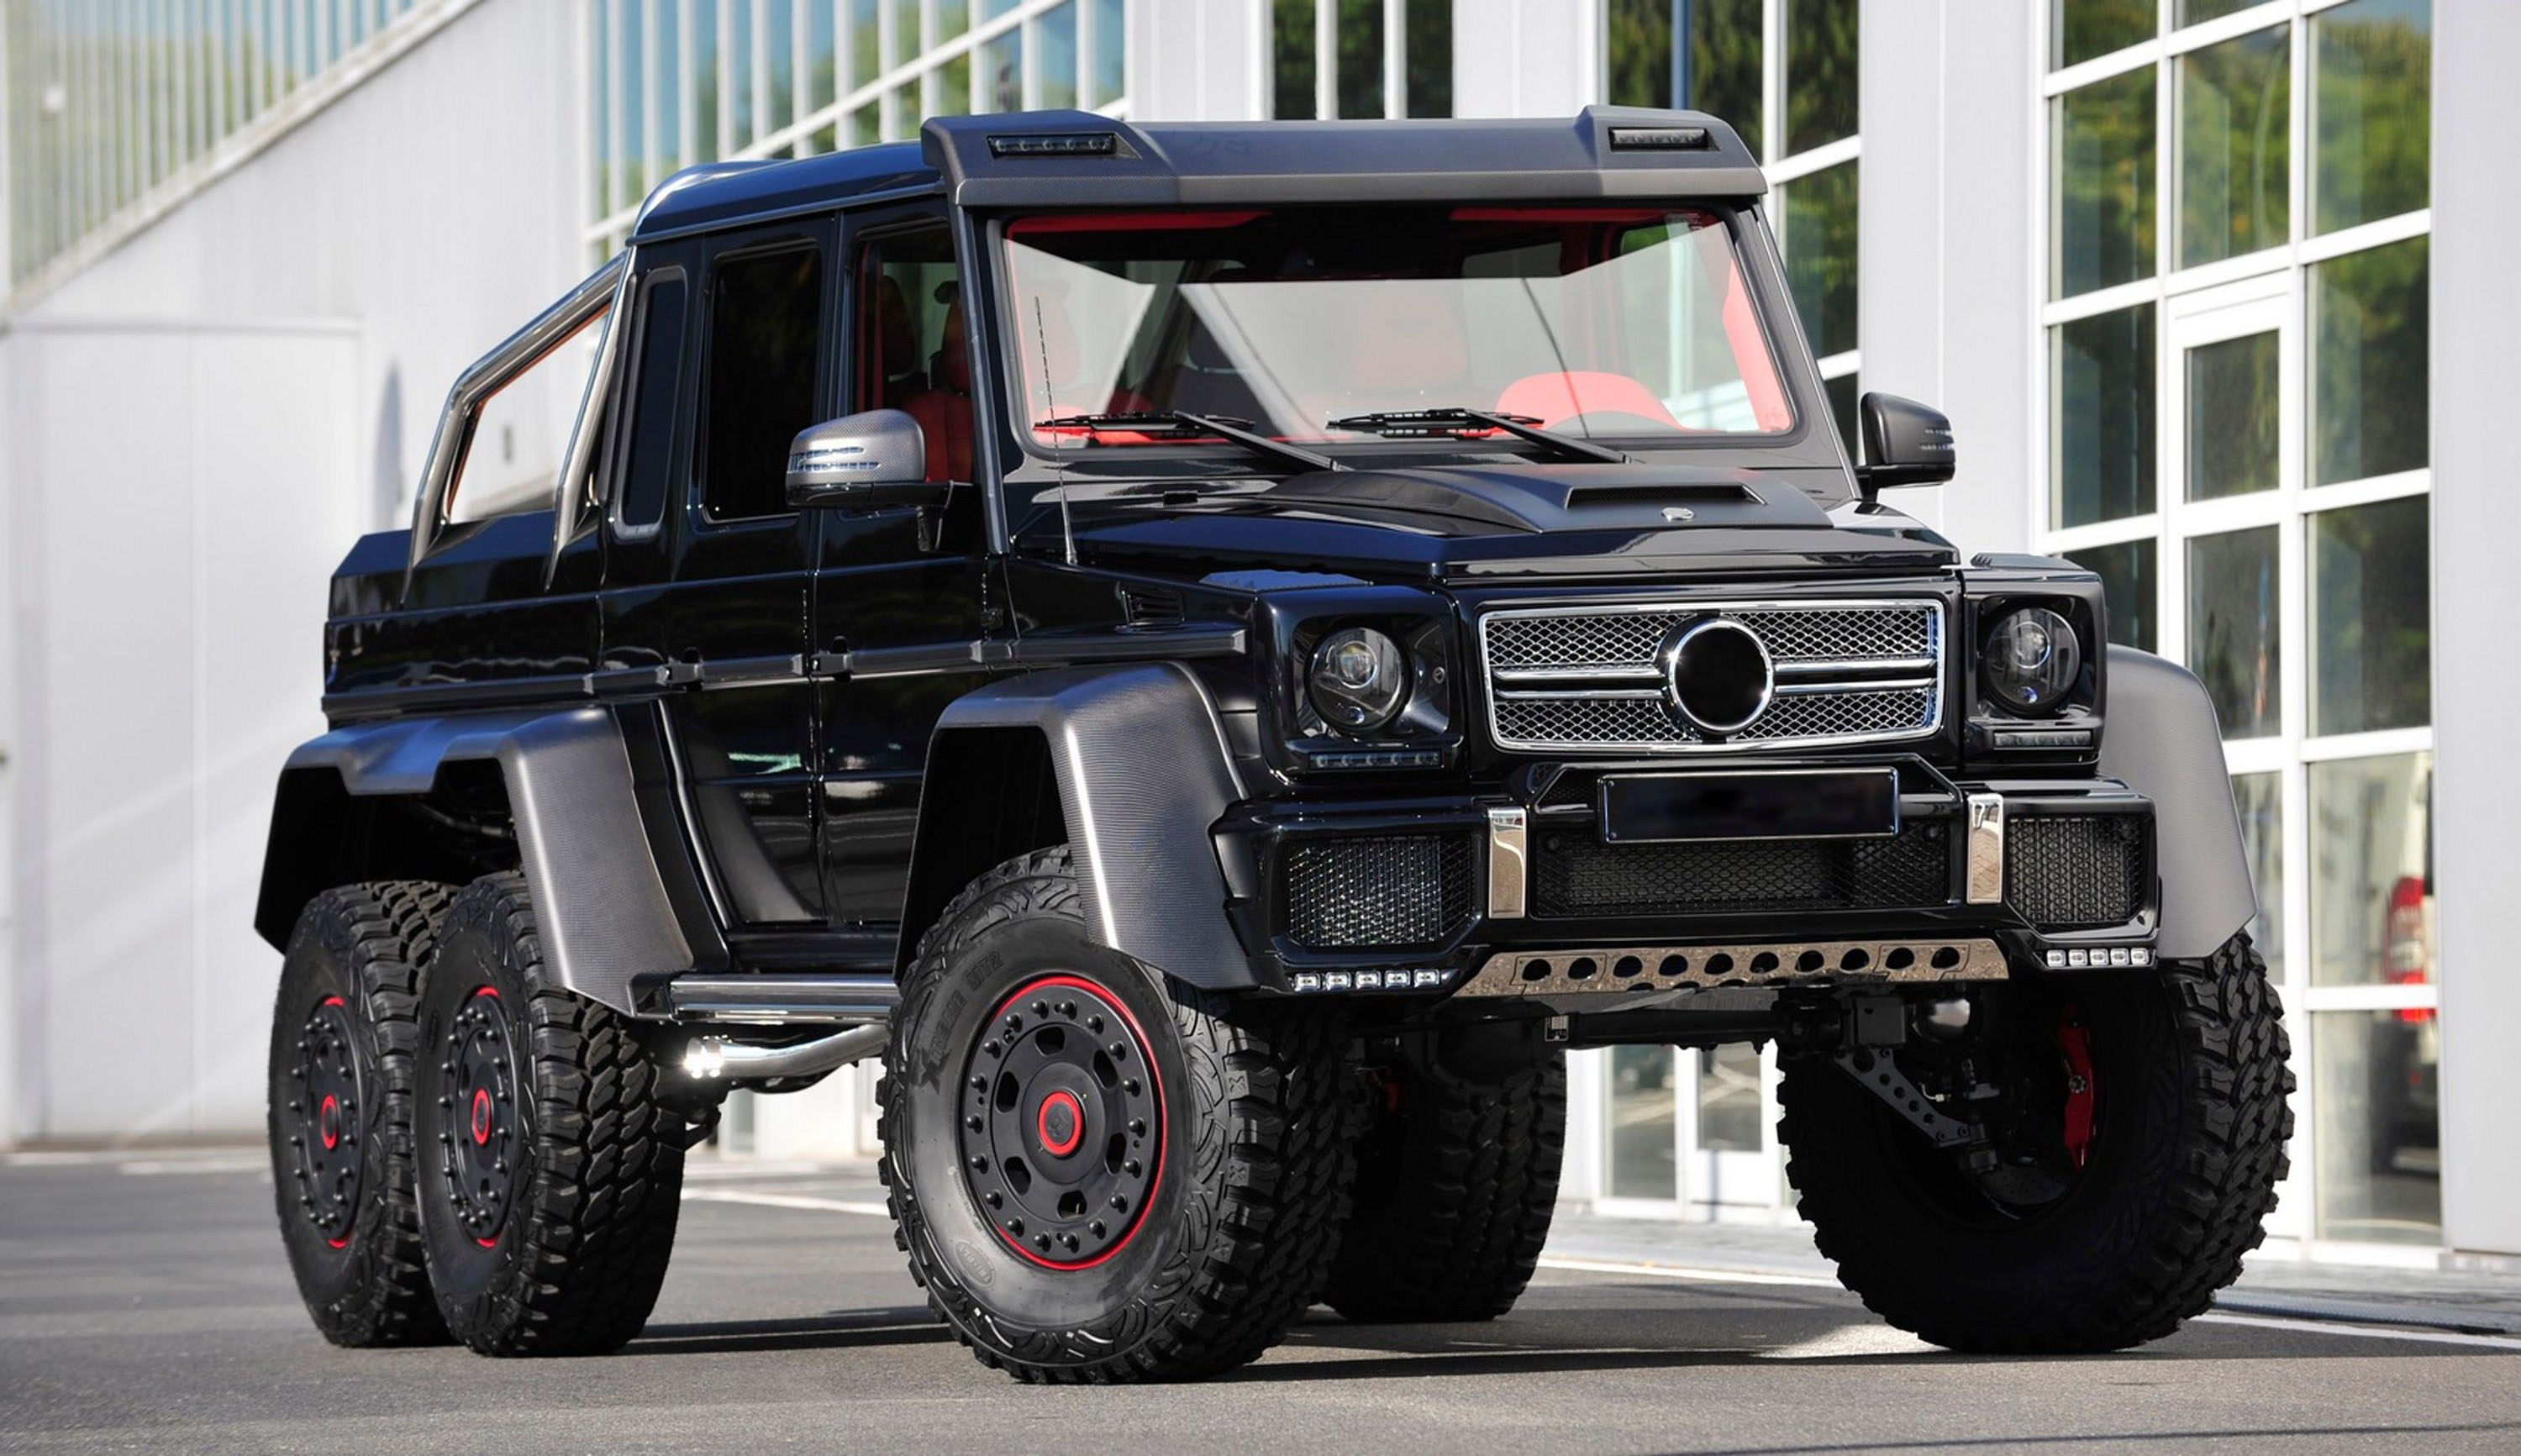 Armored Mercedes G63 Amg 6x6 With Images Mercedes Brabus